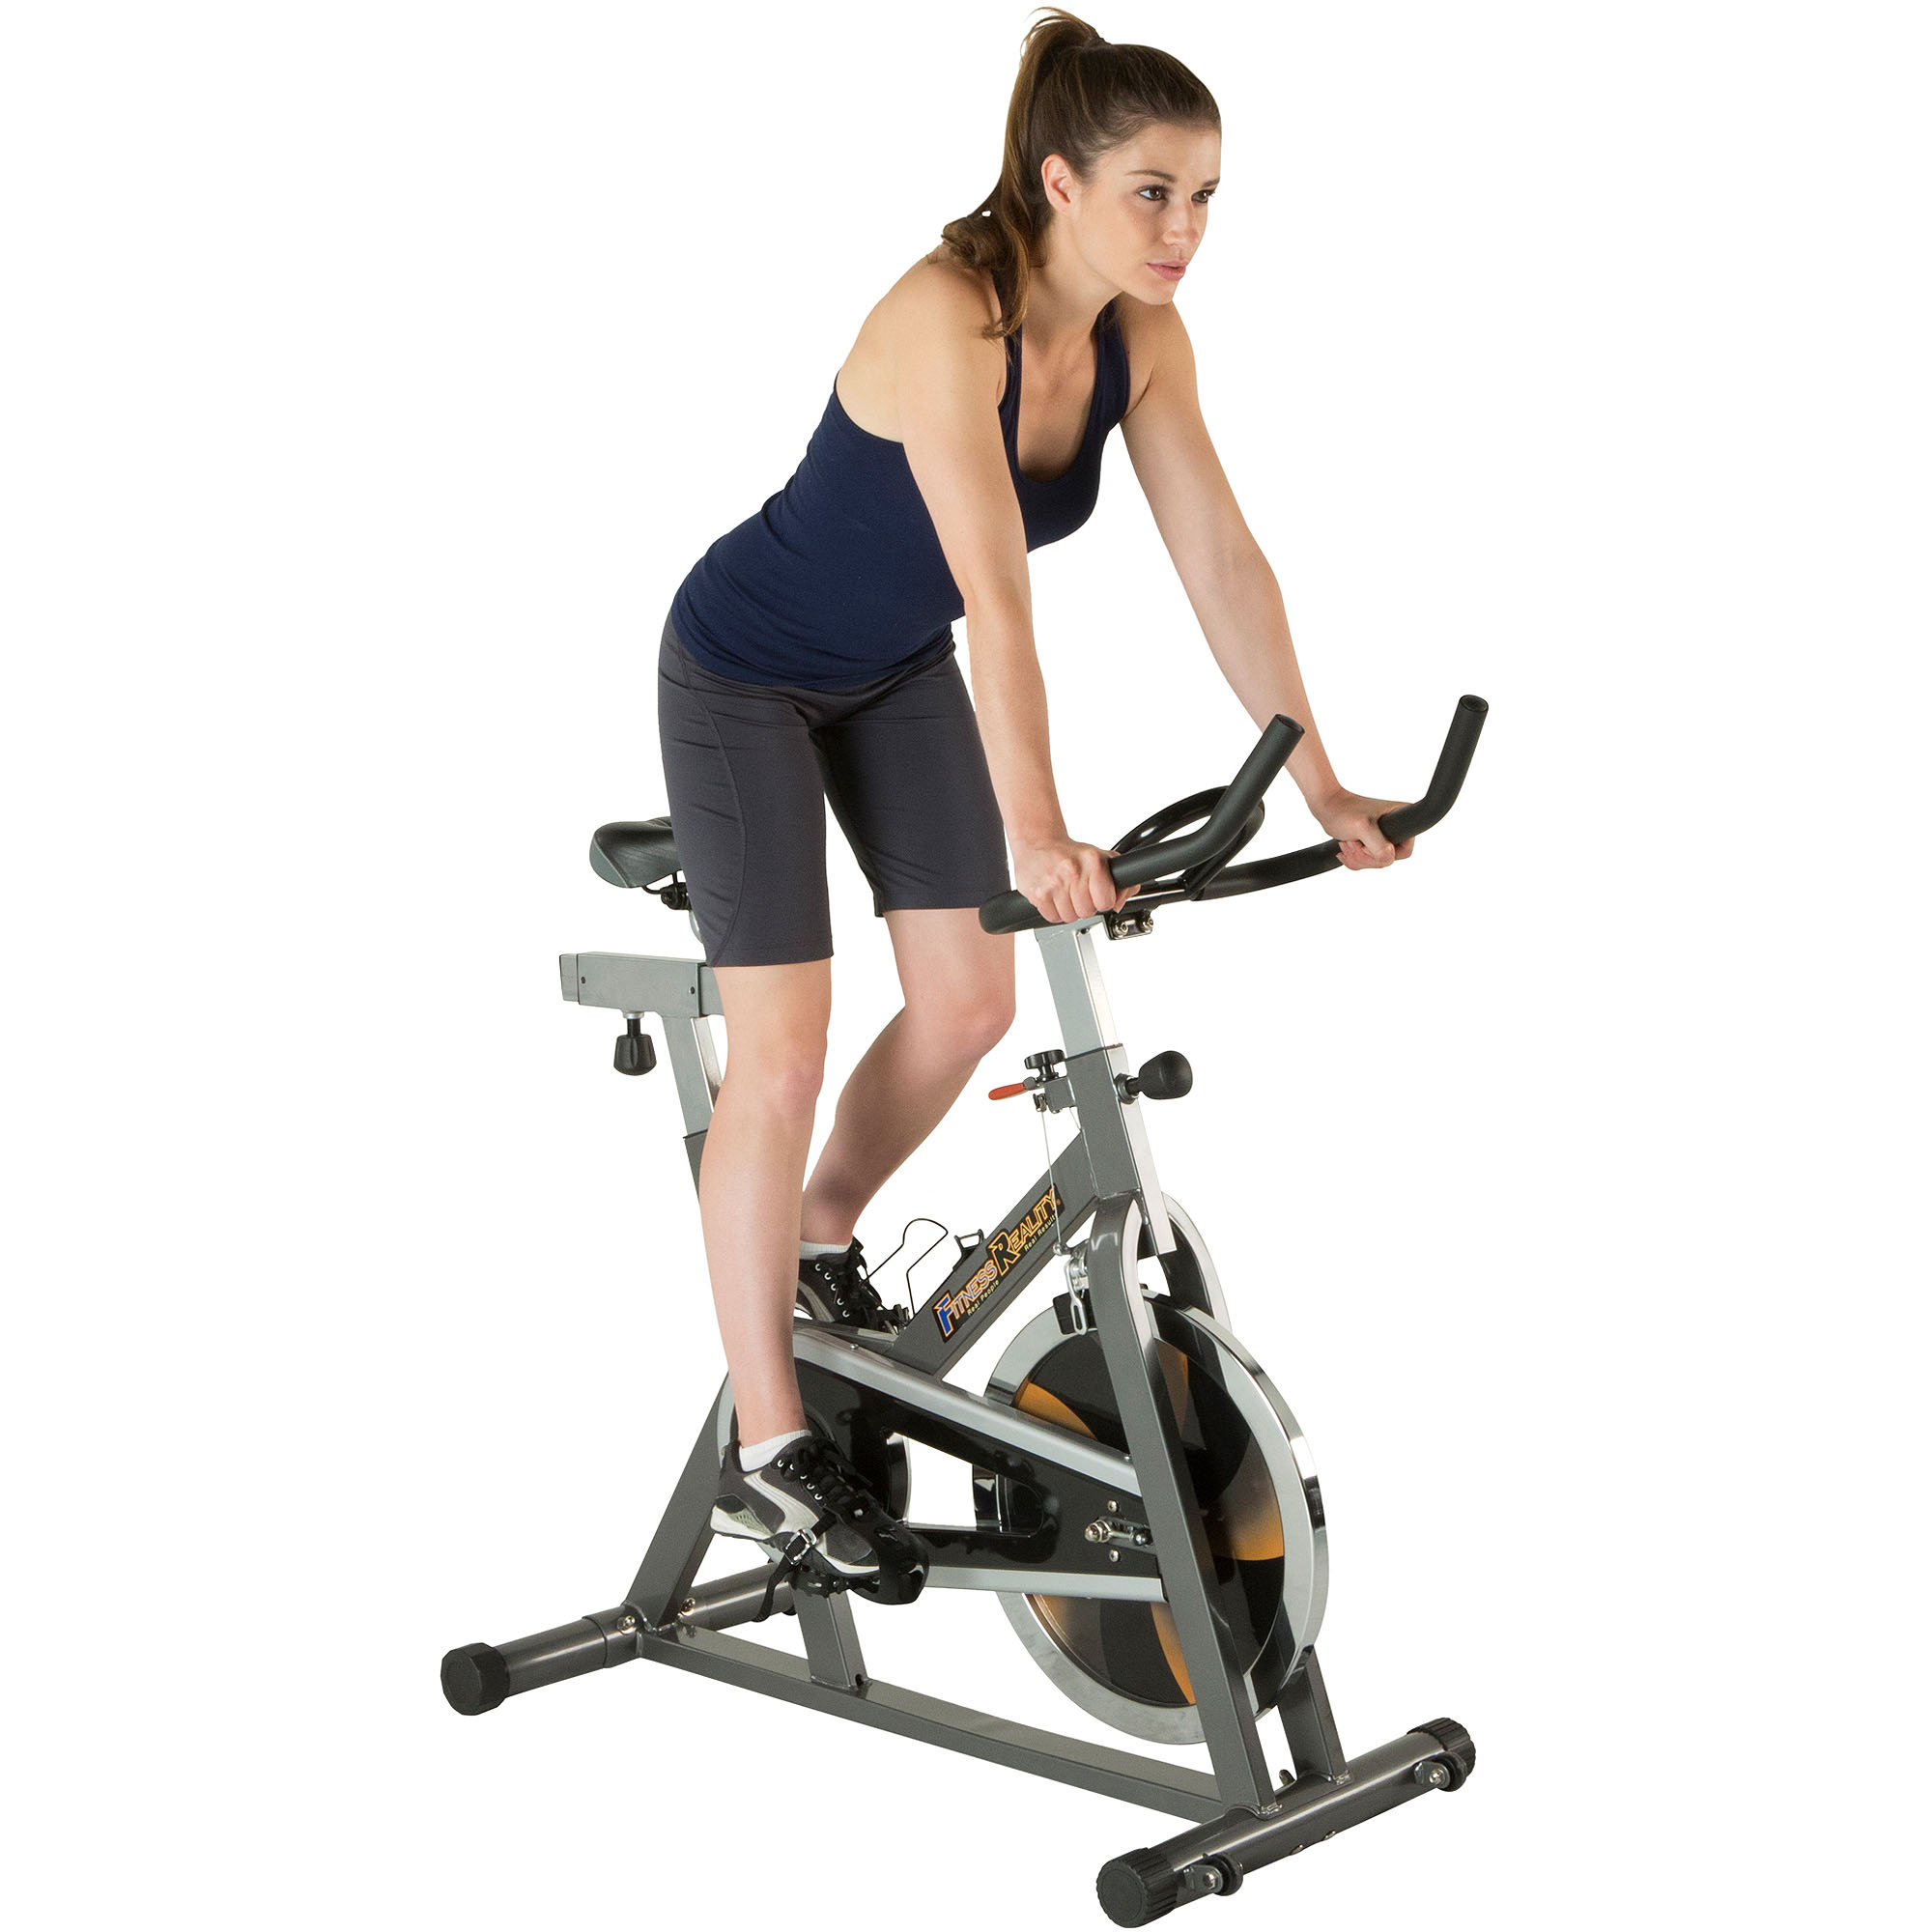 Fitness Reality S475 Wide Steel Frame Indoor Exercise Cycling Bike